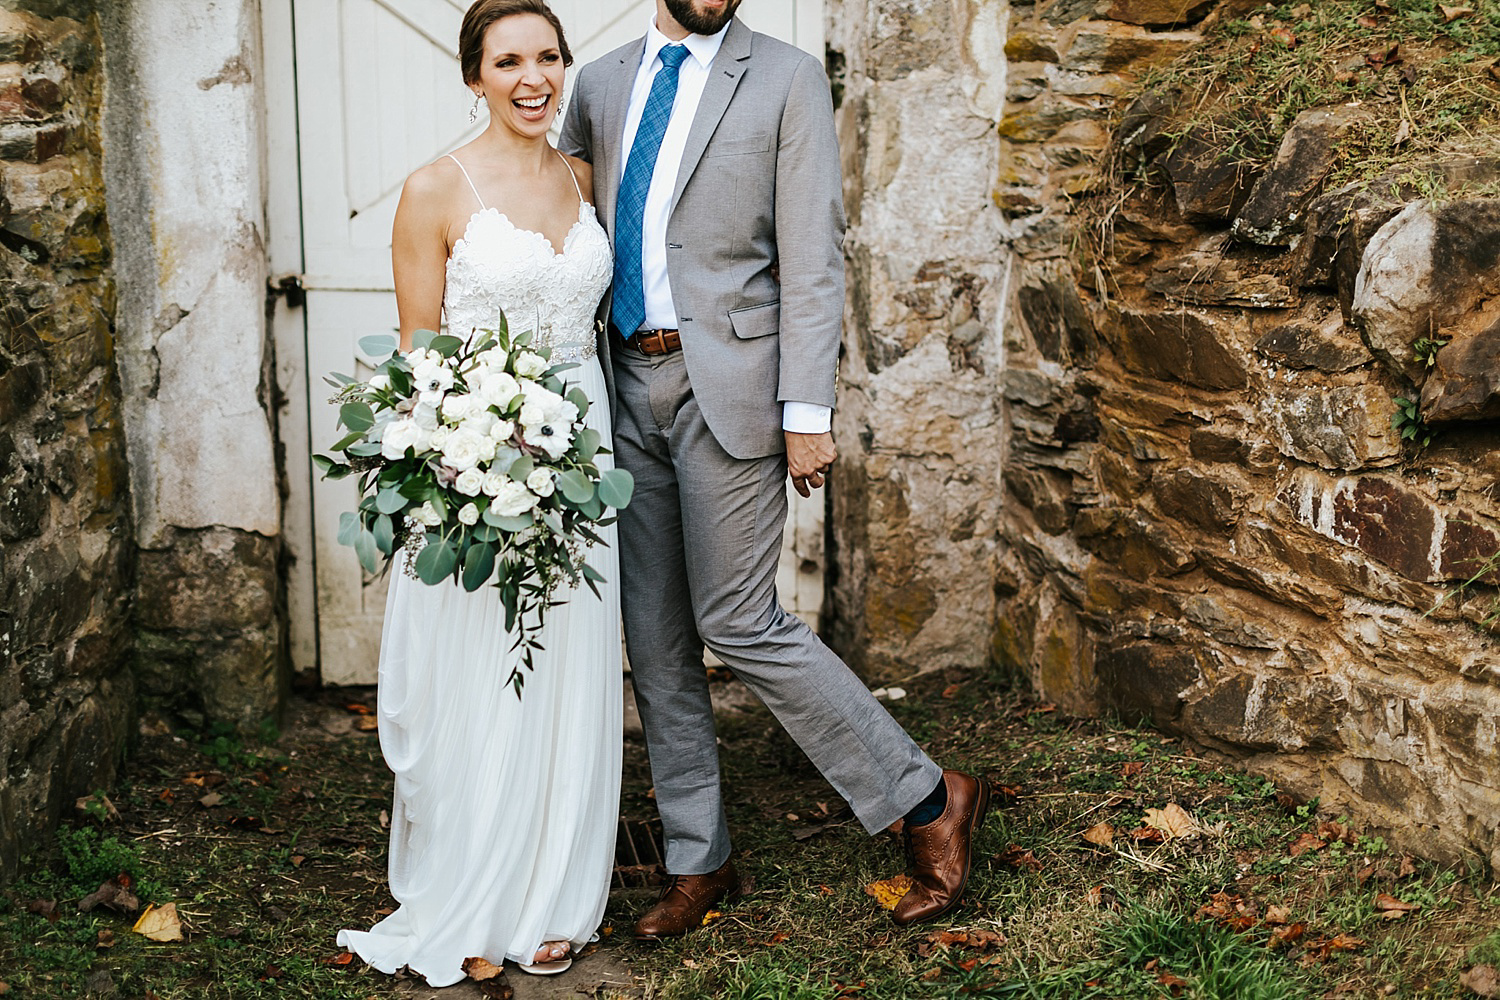 chase knox estate | philadelphia weddingFall wedding at philander chase knox by danfredo photos + films